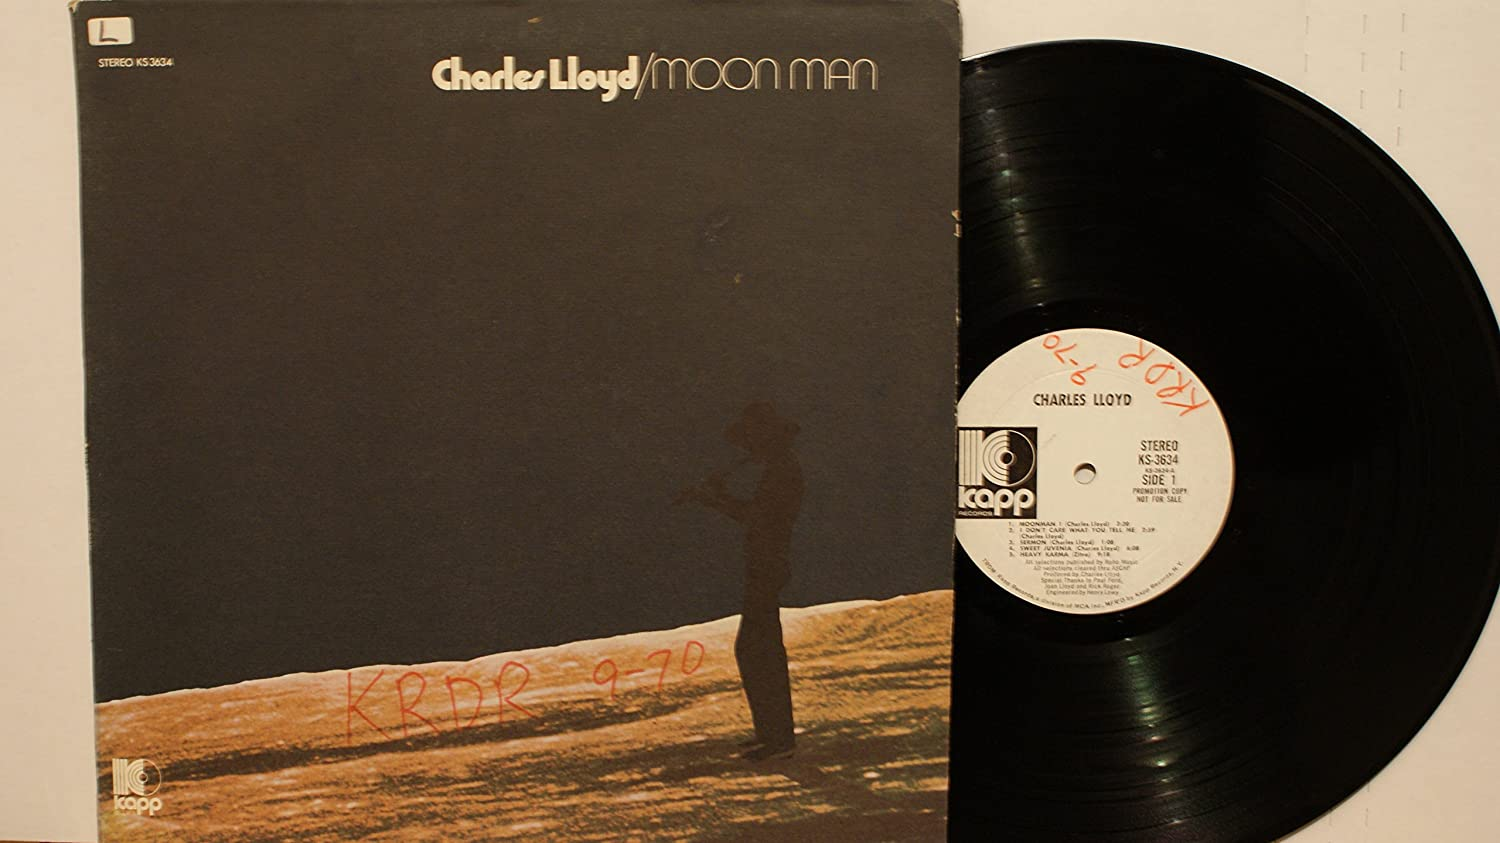 lowest discount affordable price online for sale CHARLES LLOYD LP, MOON MAN, US ISSUE EX/EX VINYL: Amazon.co ...